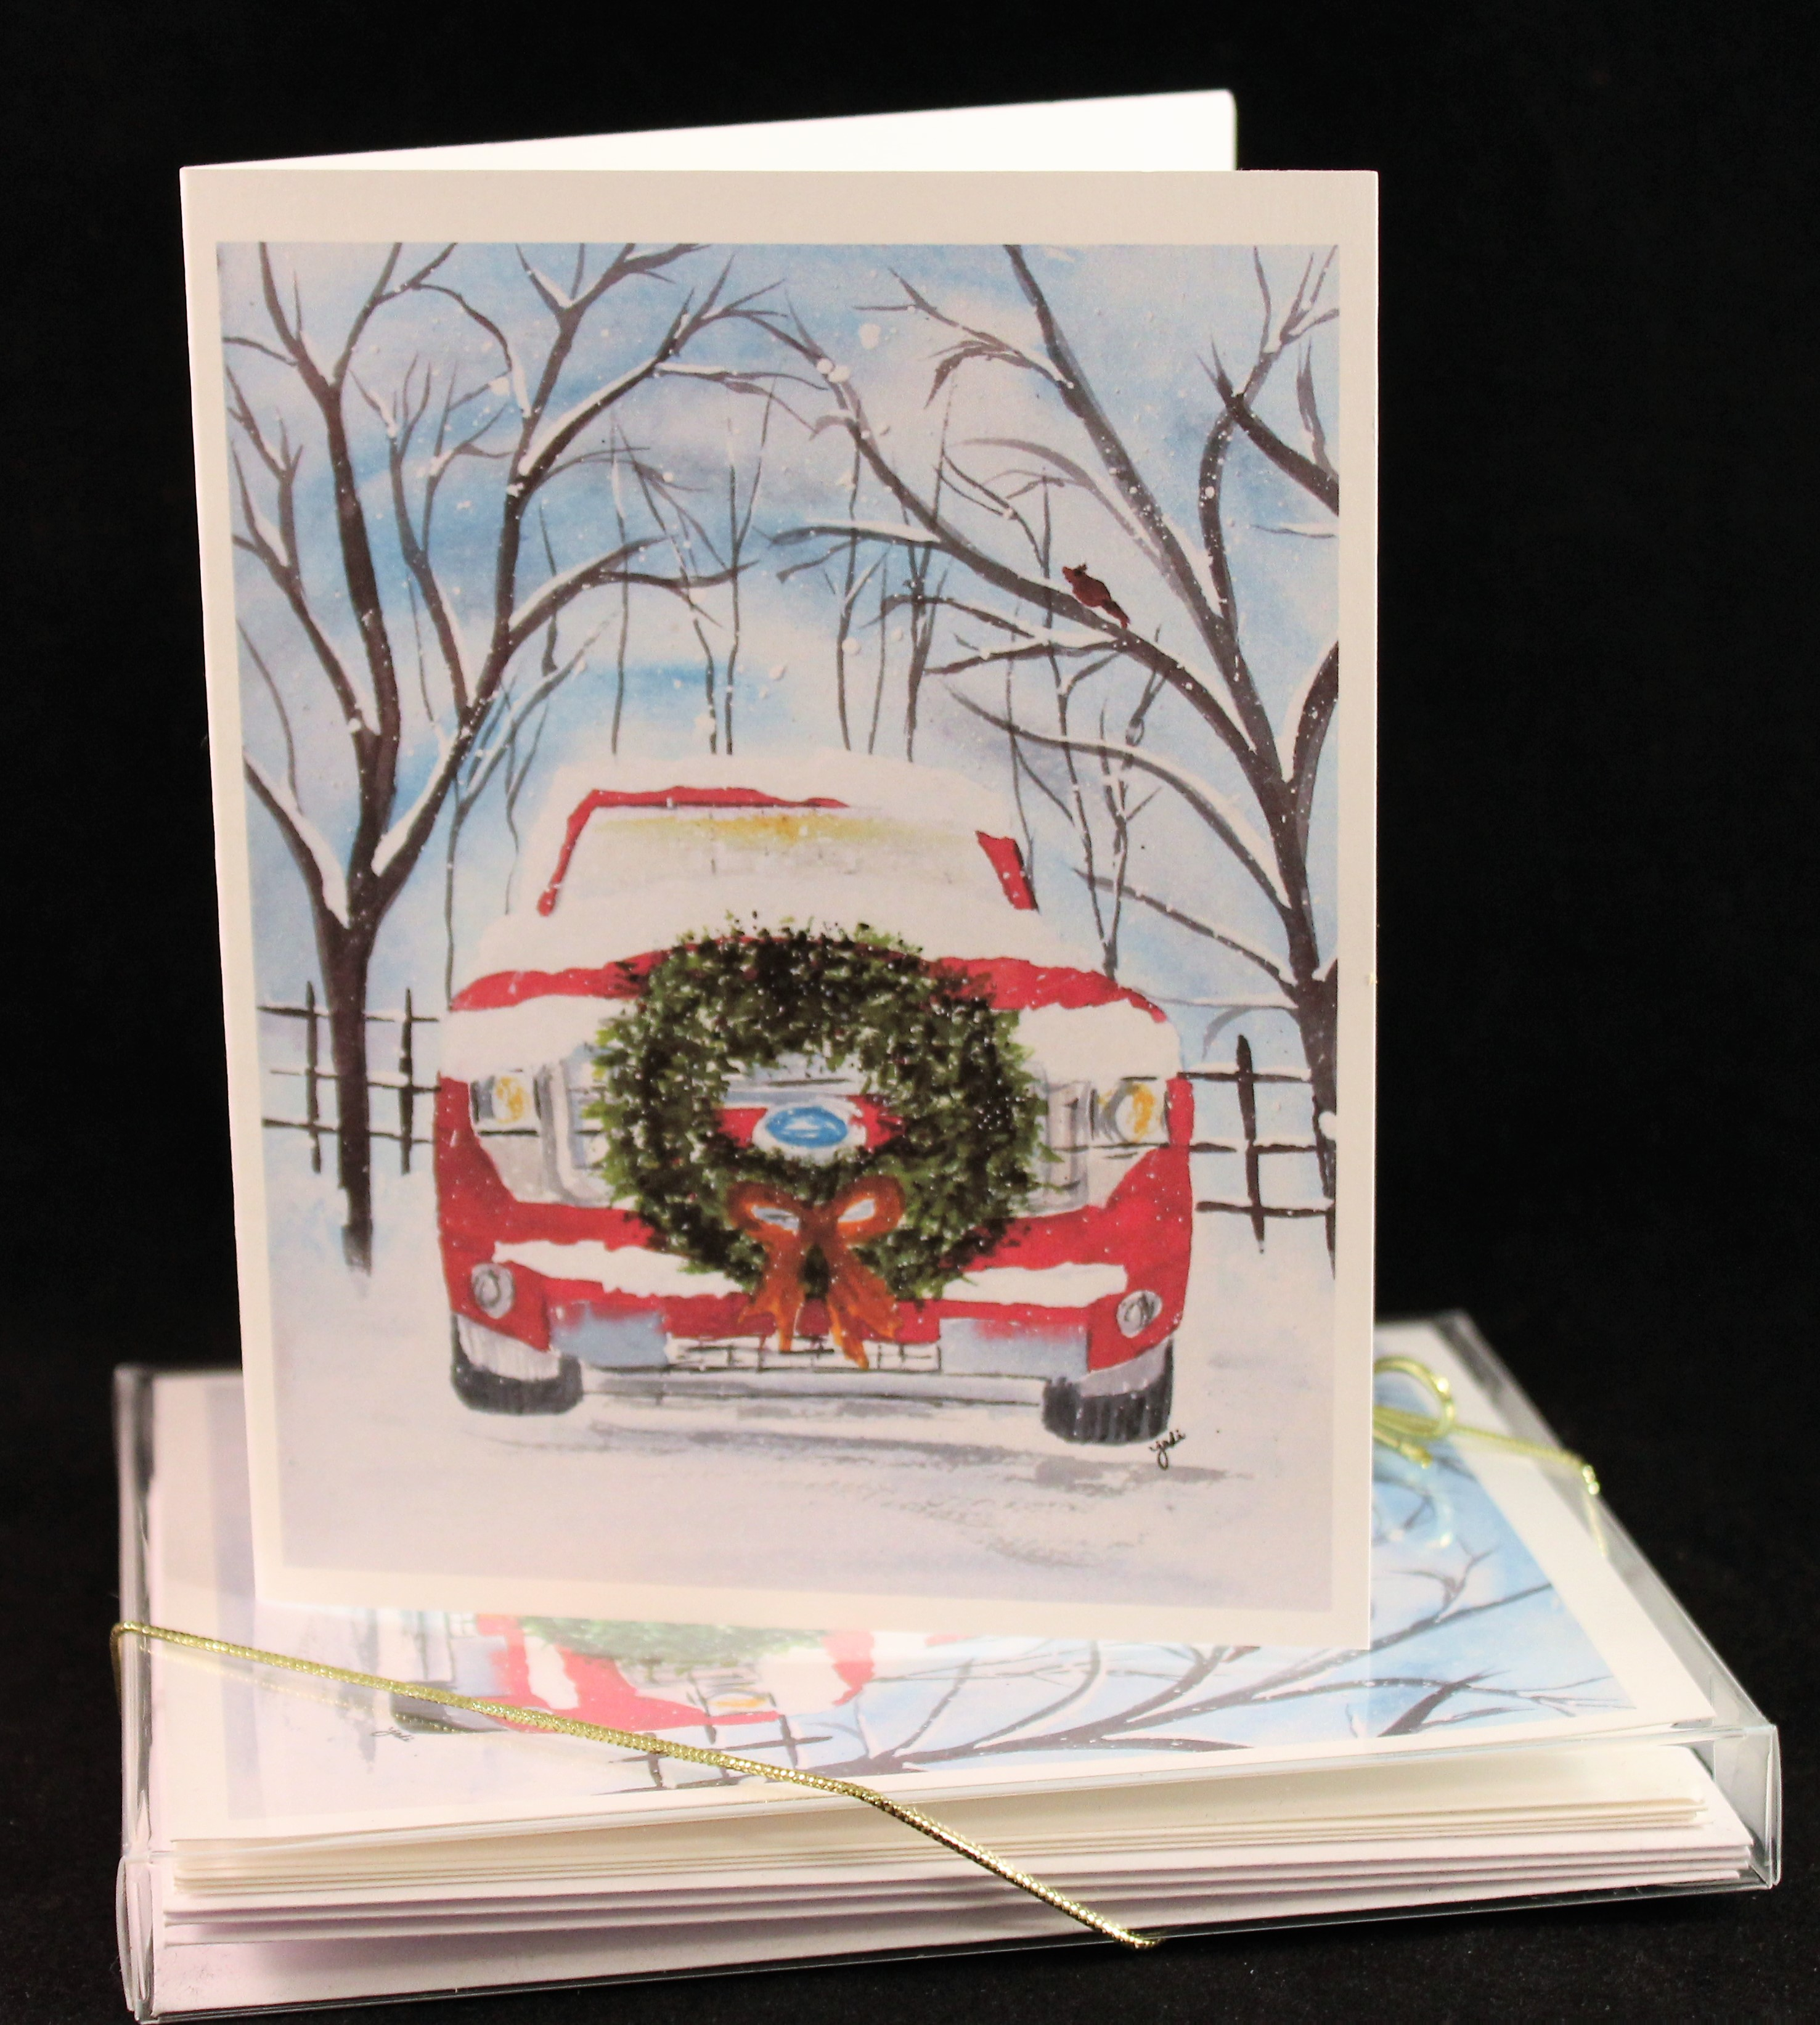 Old Truck With Christmas Tree Painting.Craft The Creative Life In Between